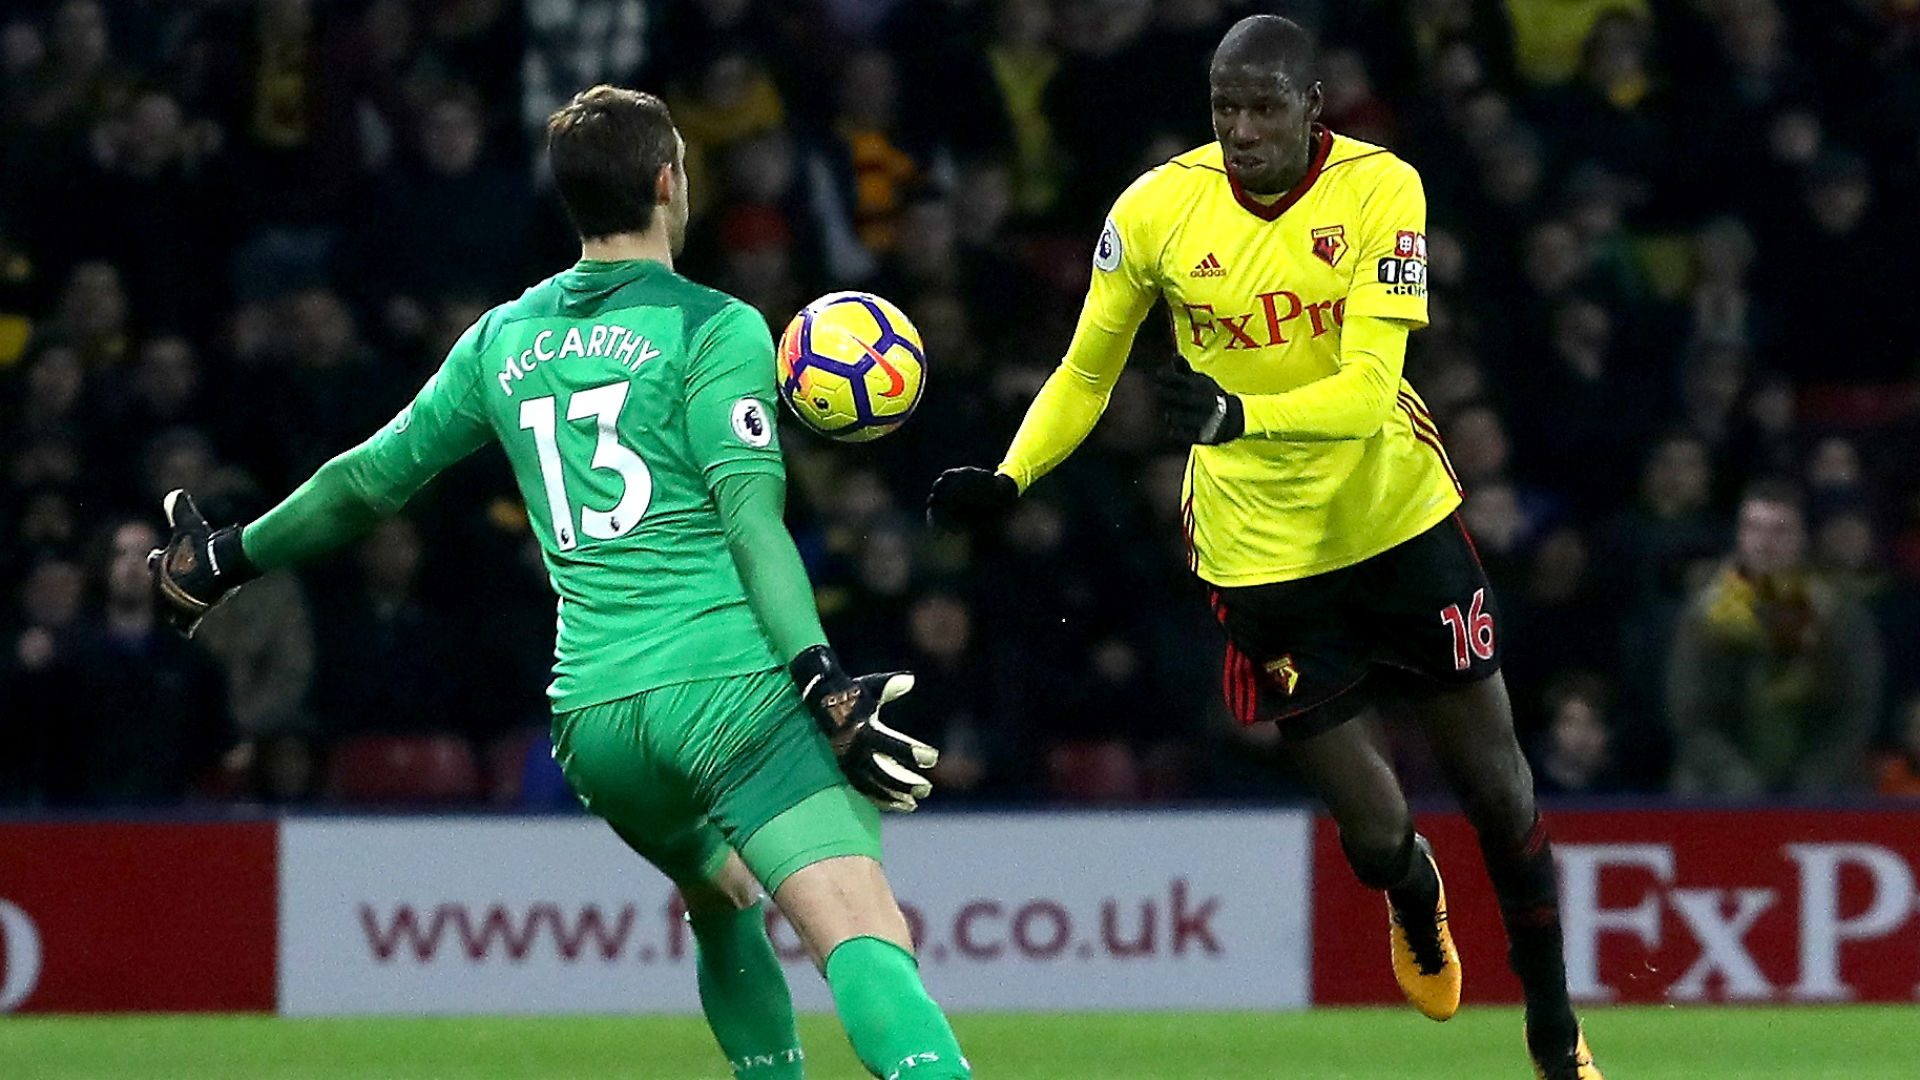 Watford earn late draw with a seeming handball goal